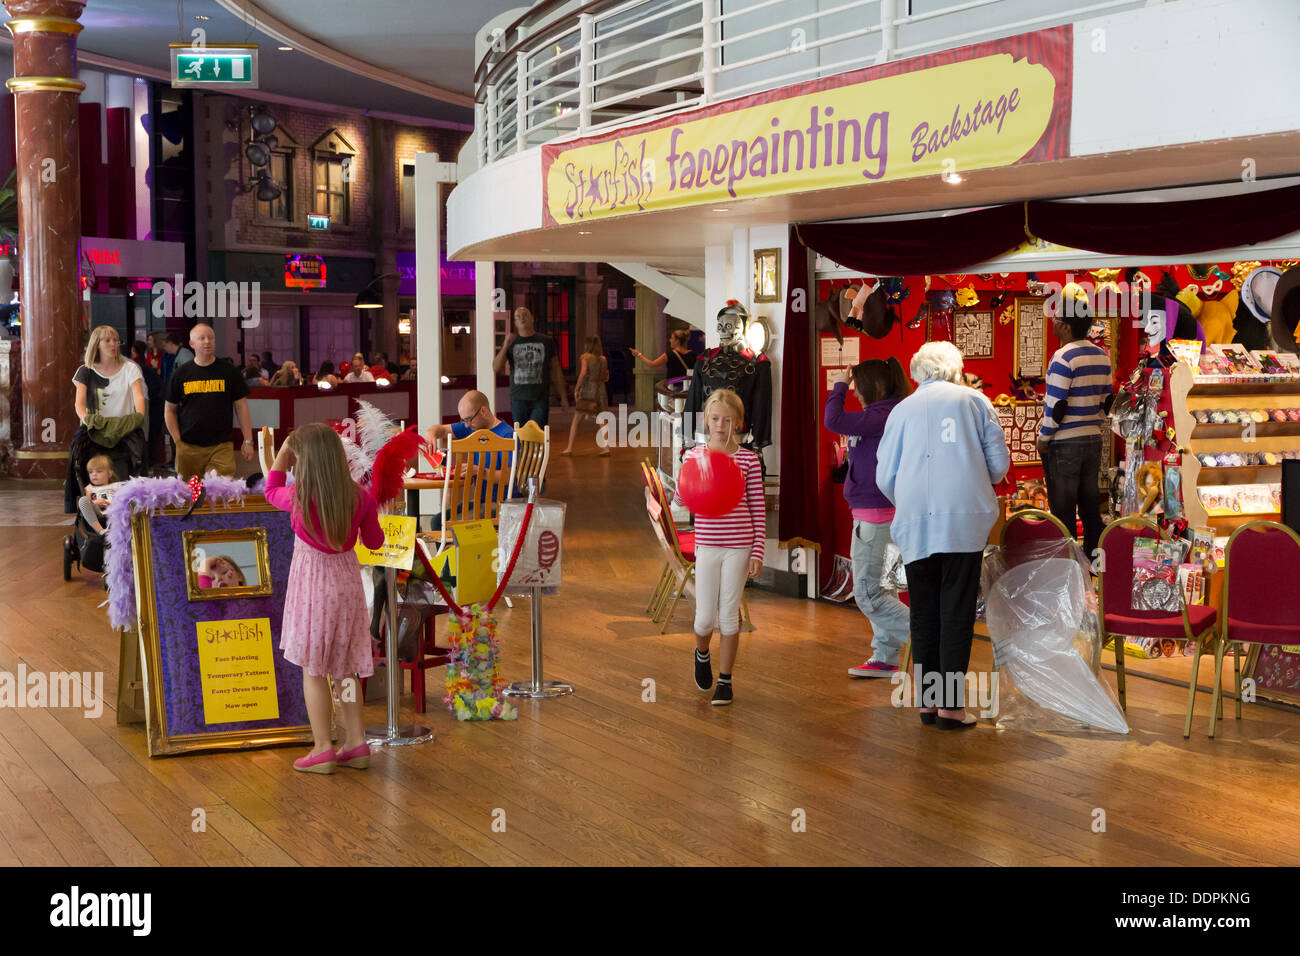 Childrens facepainting shop in the Orient at The Intu Trafford Centre, Manchester, England. - Stock Image